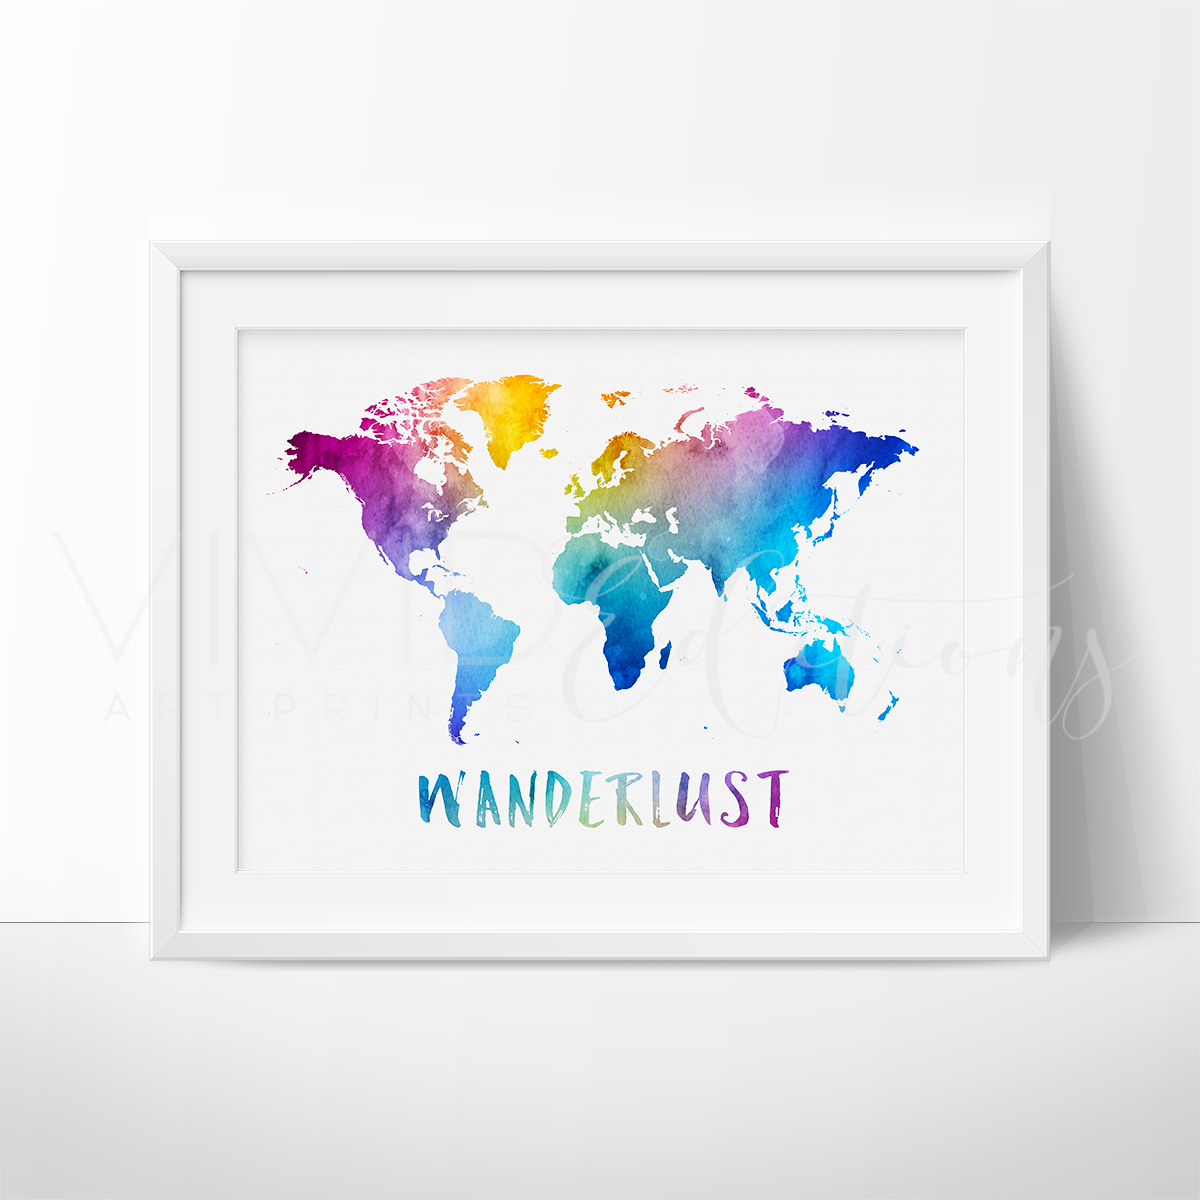 Wanderlust, Travel Quote World Map Watercolor Art Print Art Print - VIVIDEDITIONS